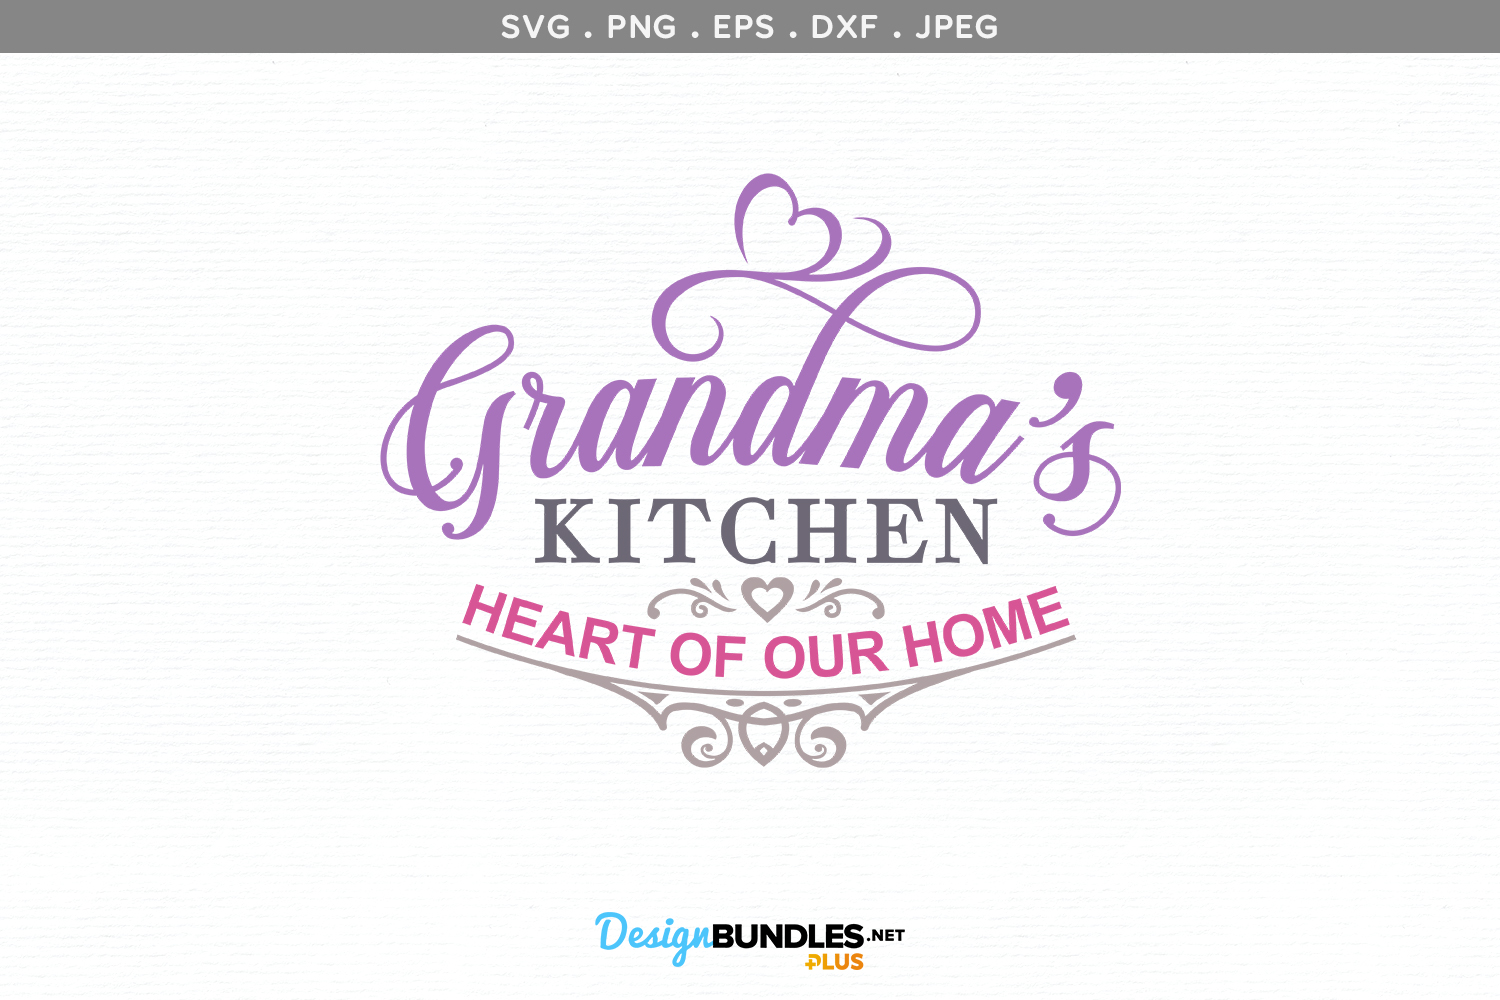 Grandma's Kitchen, Heart of our home - svg cut files example image 2